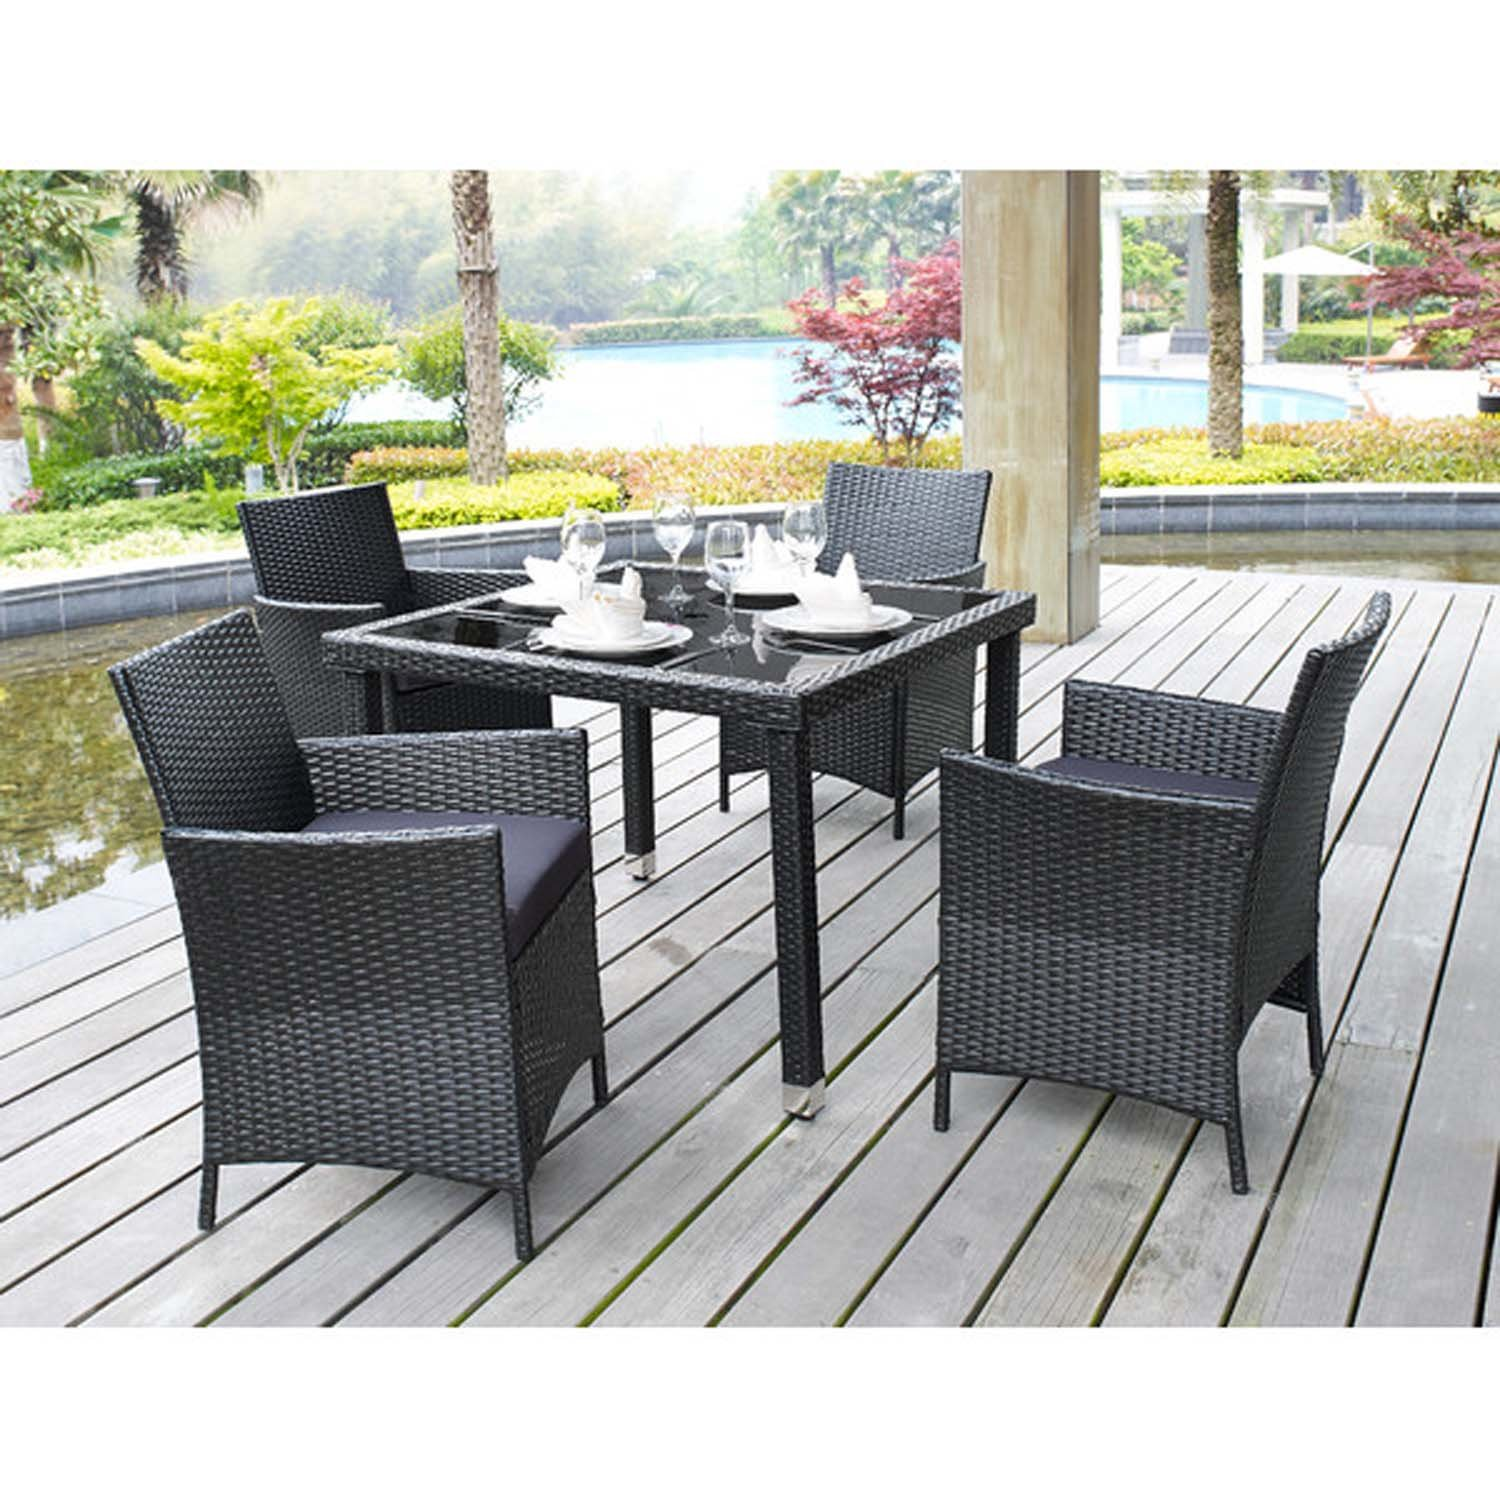 amazoncom 5 piece outdoor patio dining set with cushions uv weather resistant rattan wicker heavy duty steel powder coated furniture rectangular - Cheap Patio Sets